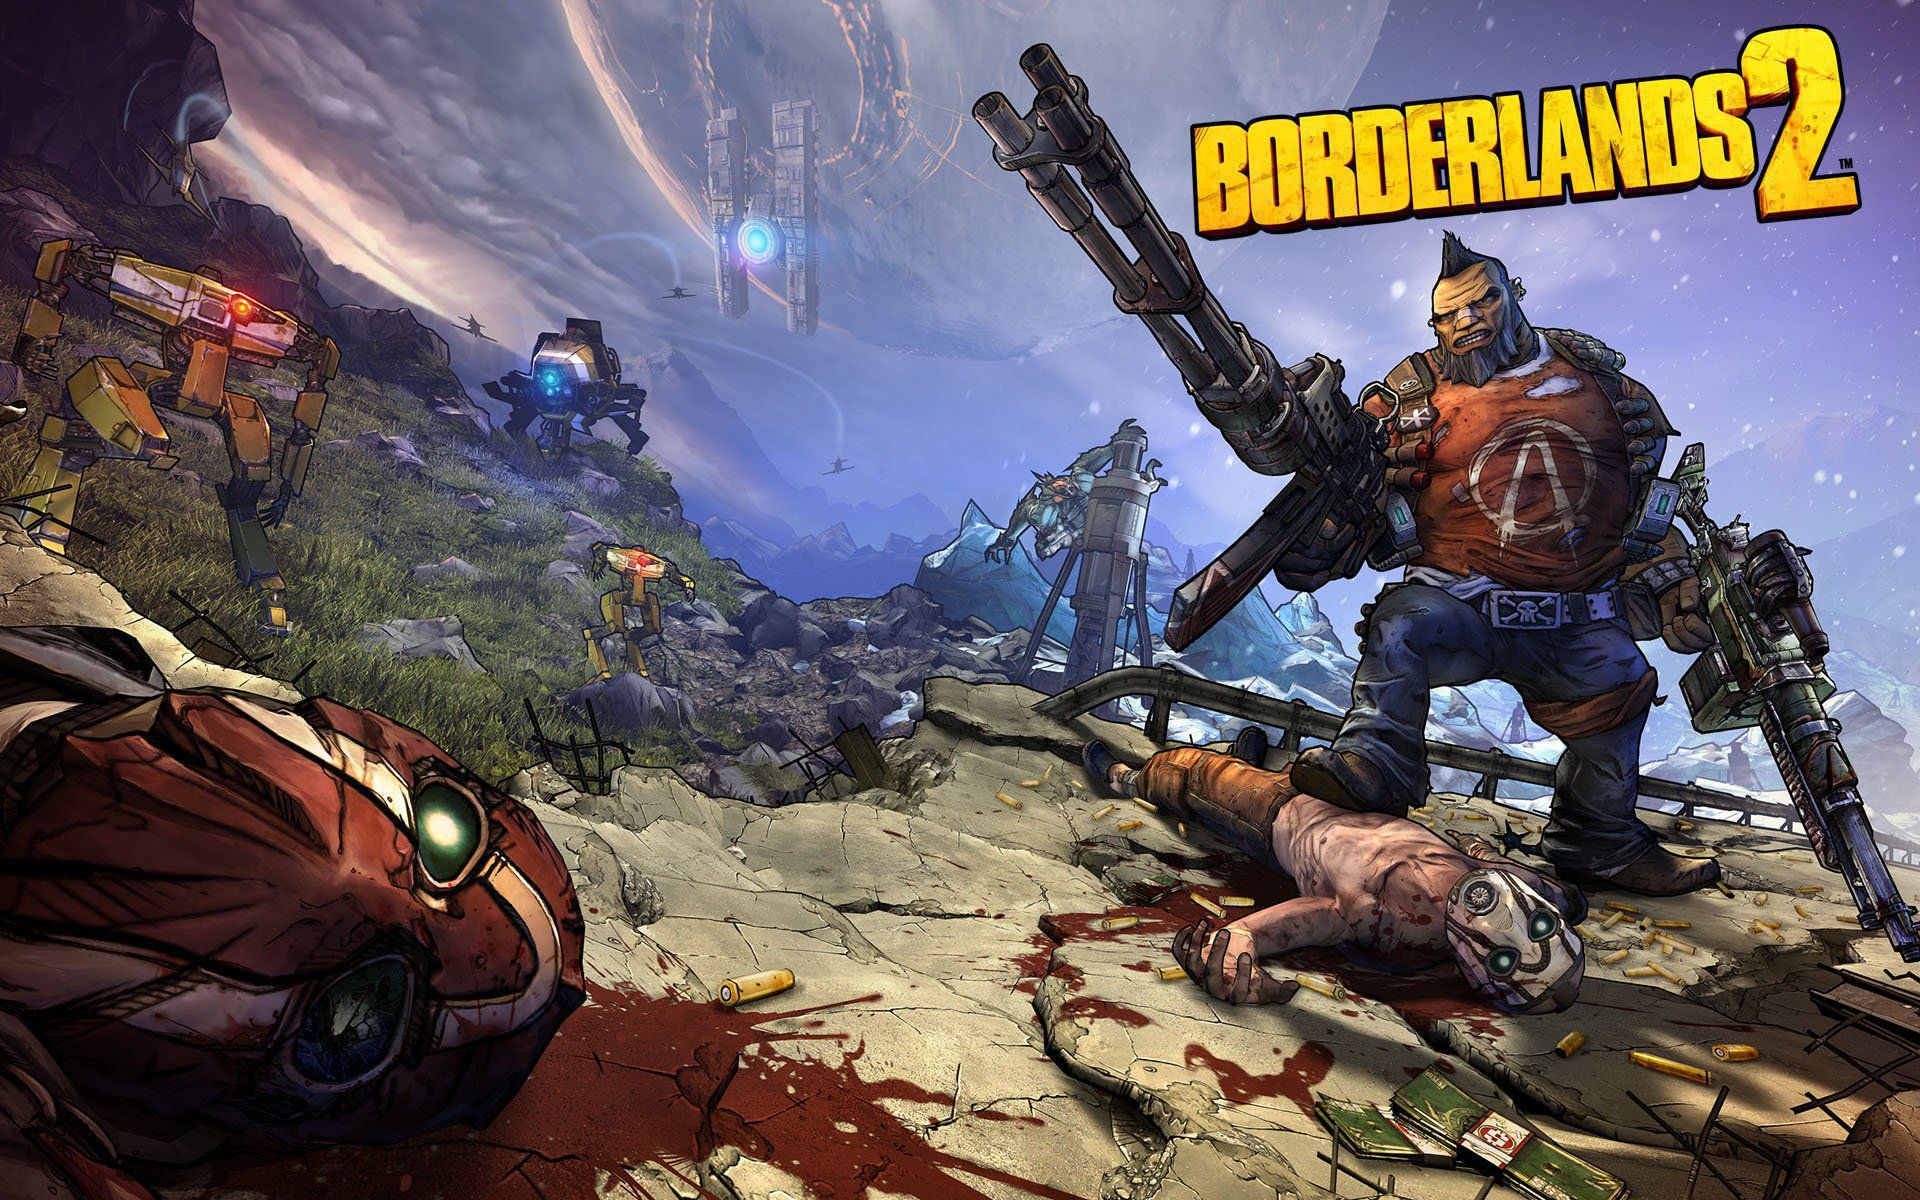 Borderlands 2 Photos